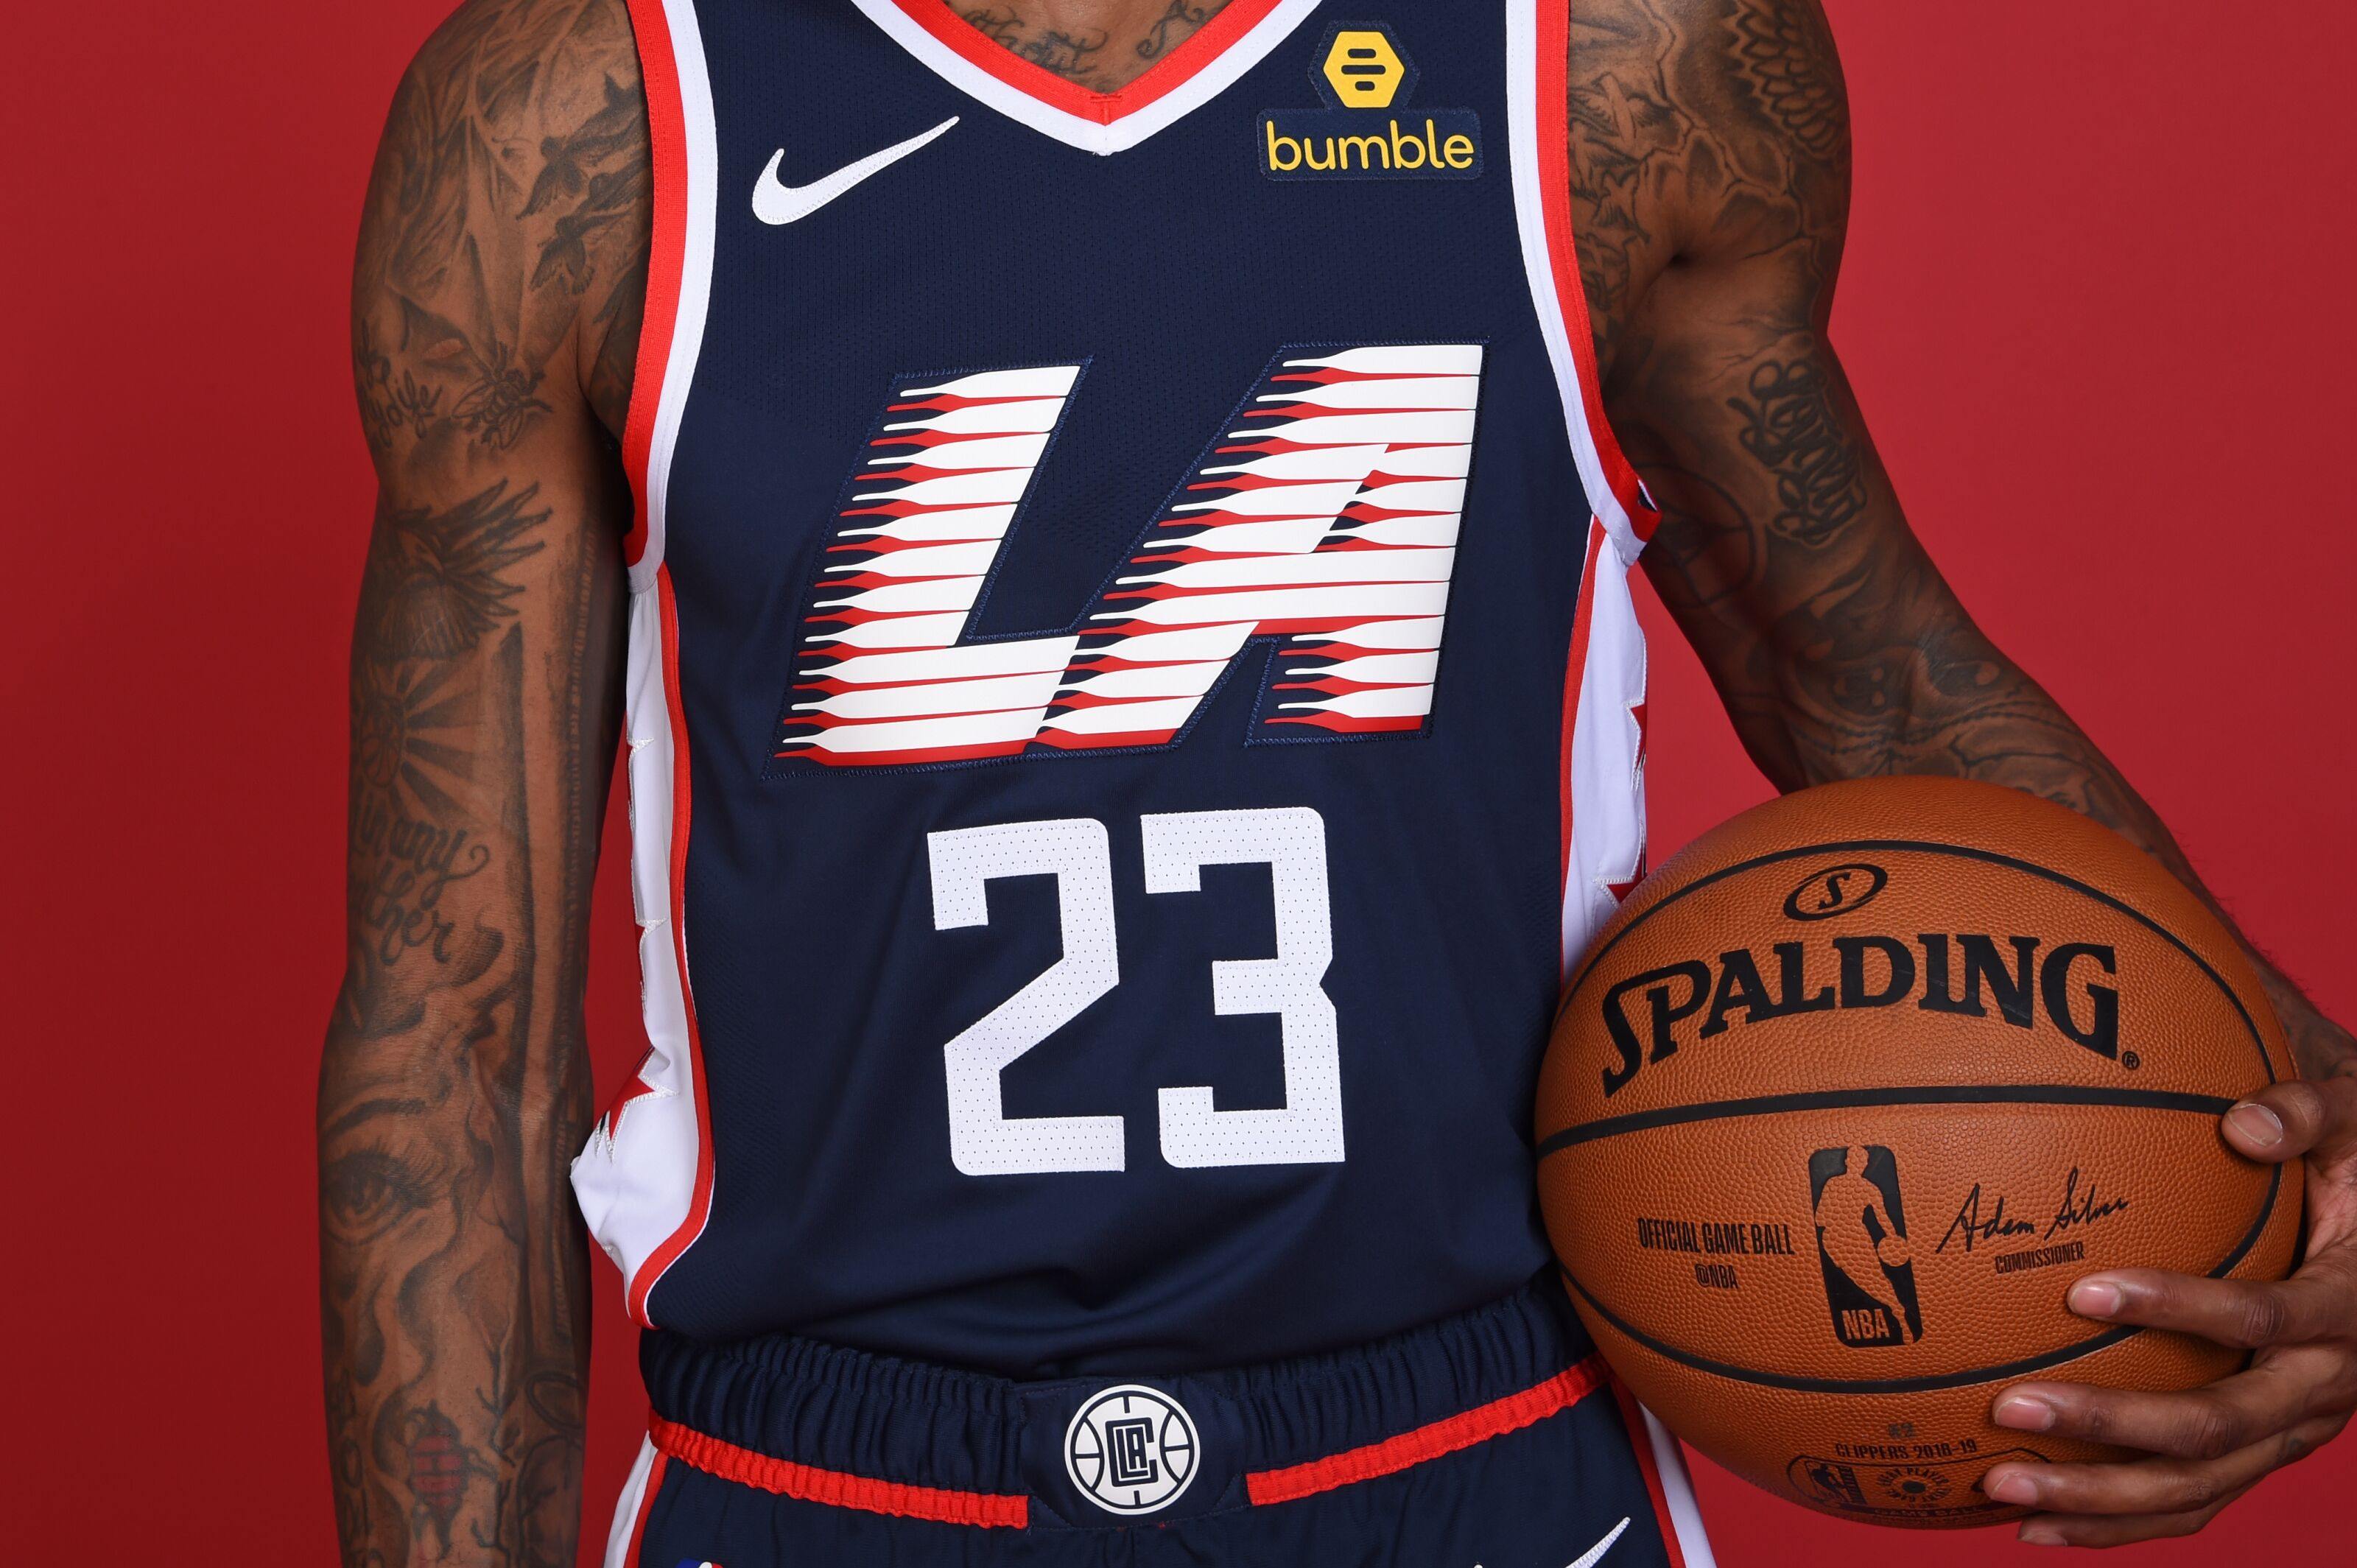 987d5c0fab9 NBA City Jersey Rankings  How the LA Clippers compare to everyone else -  Page 2